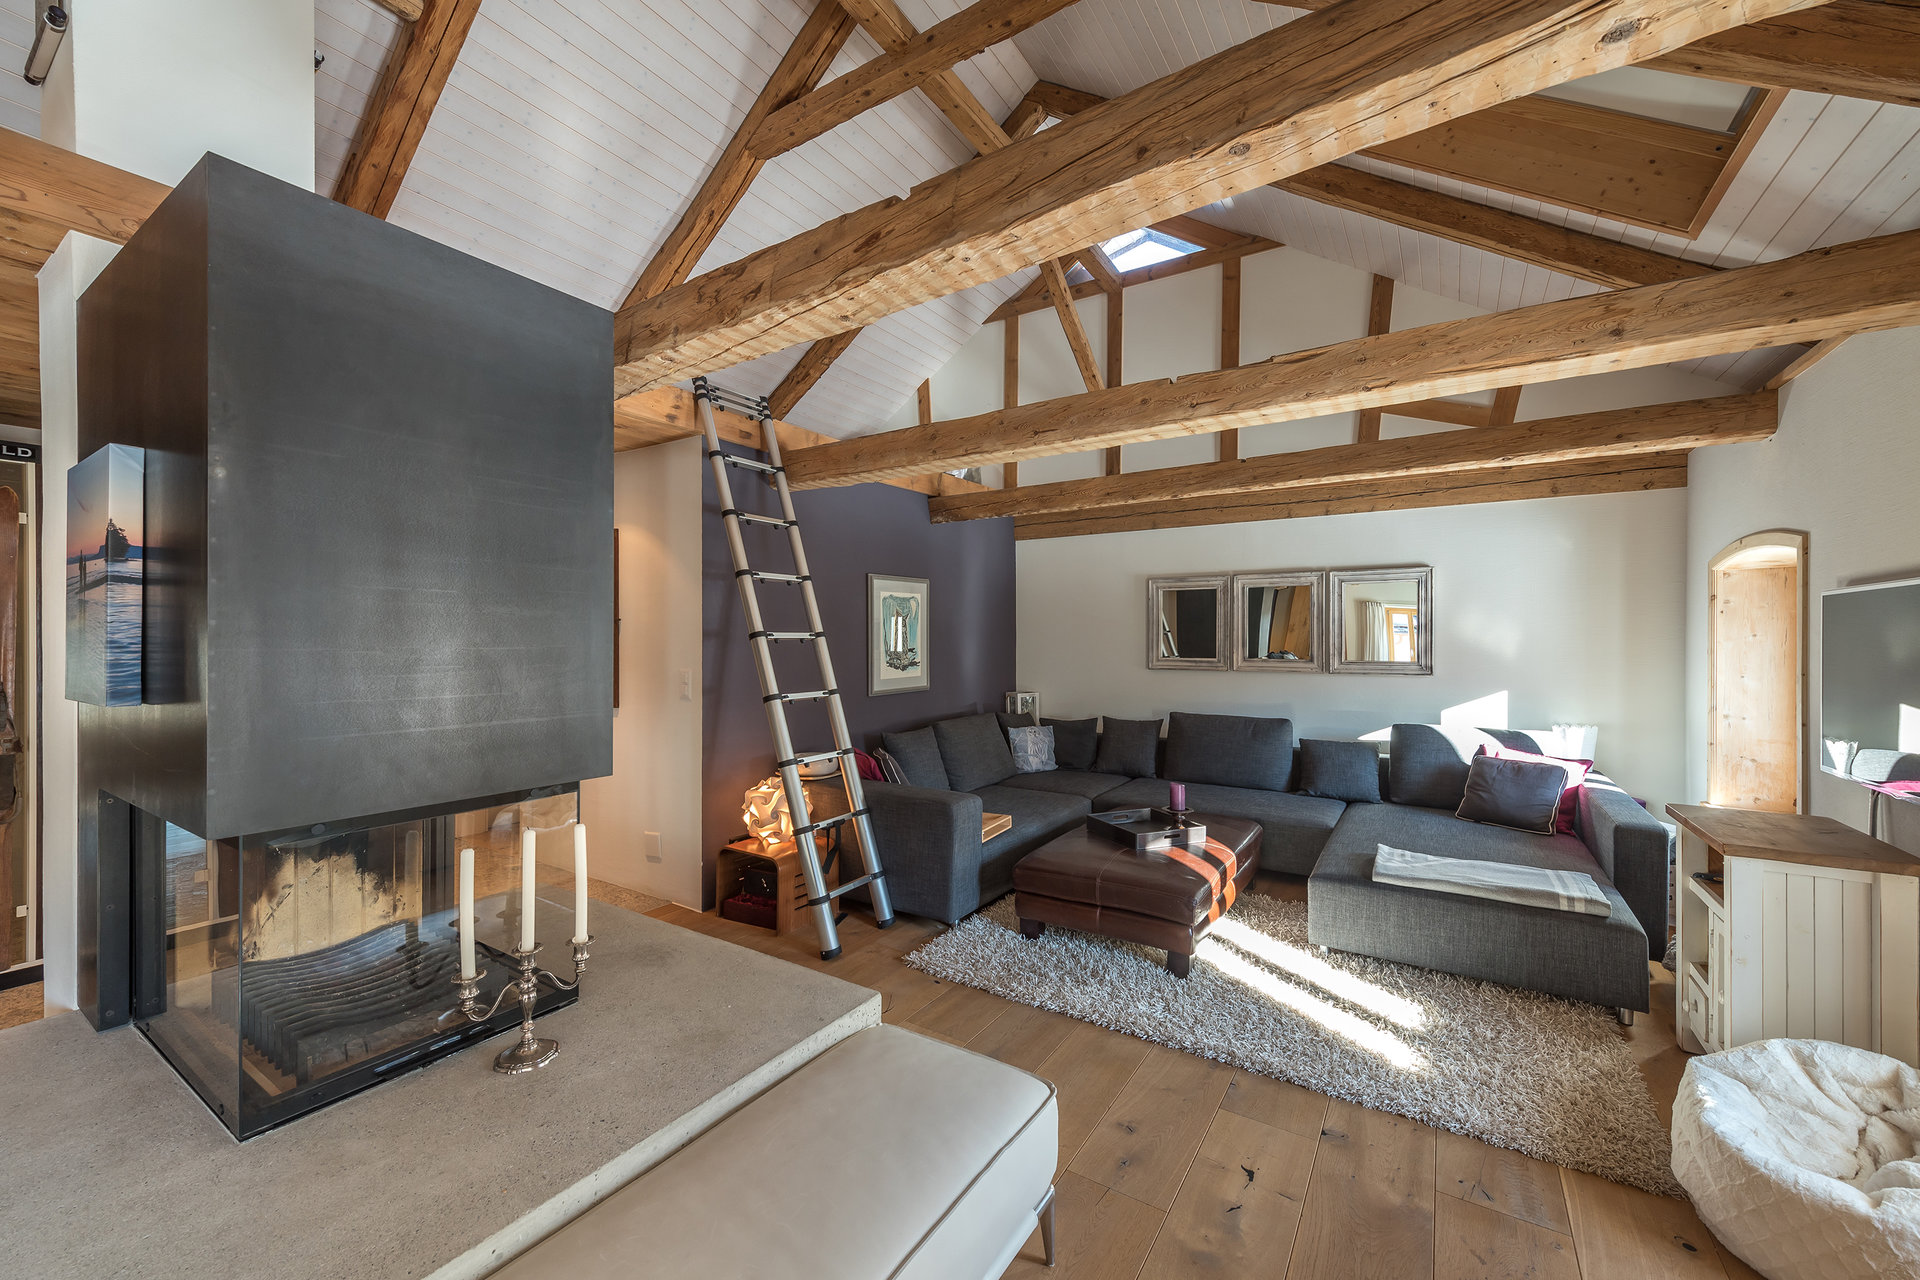 Mountain house for sale in Scoul - living room